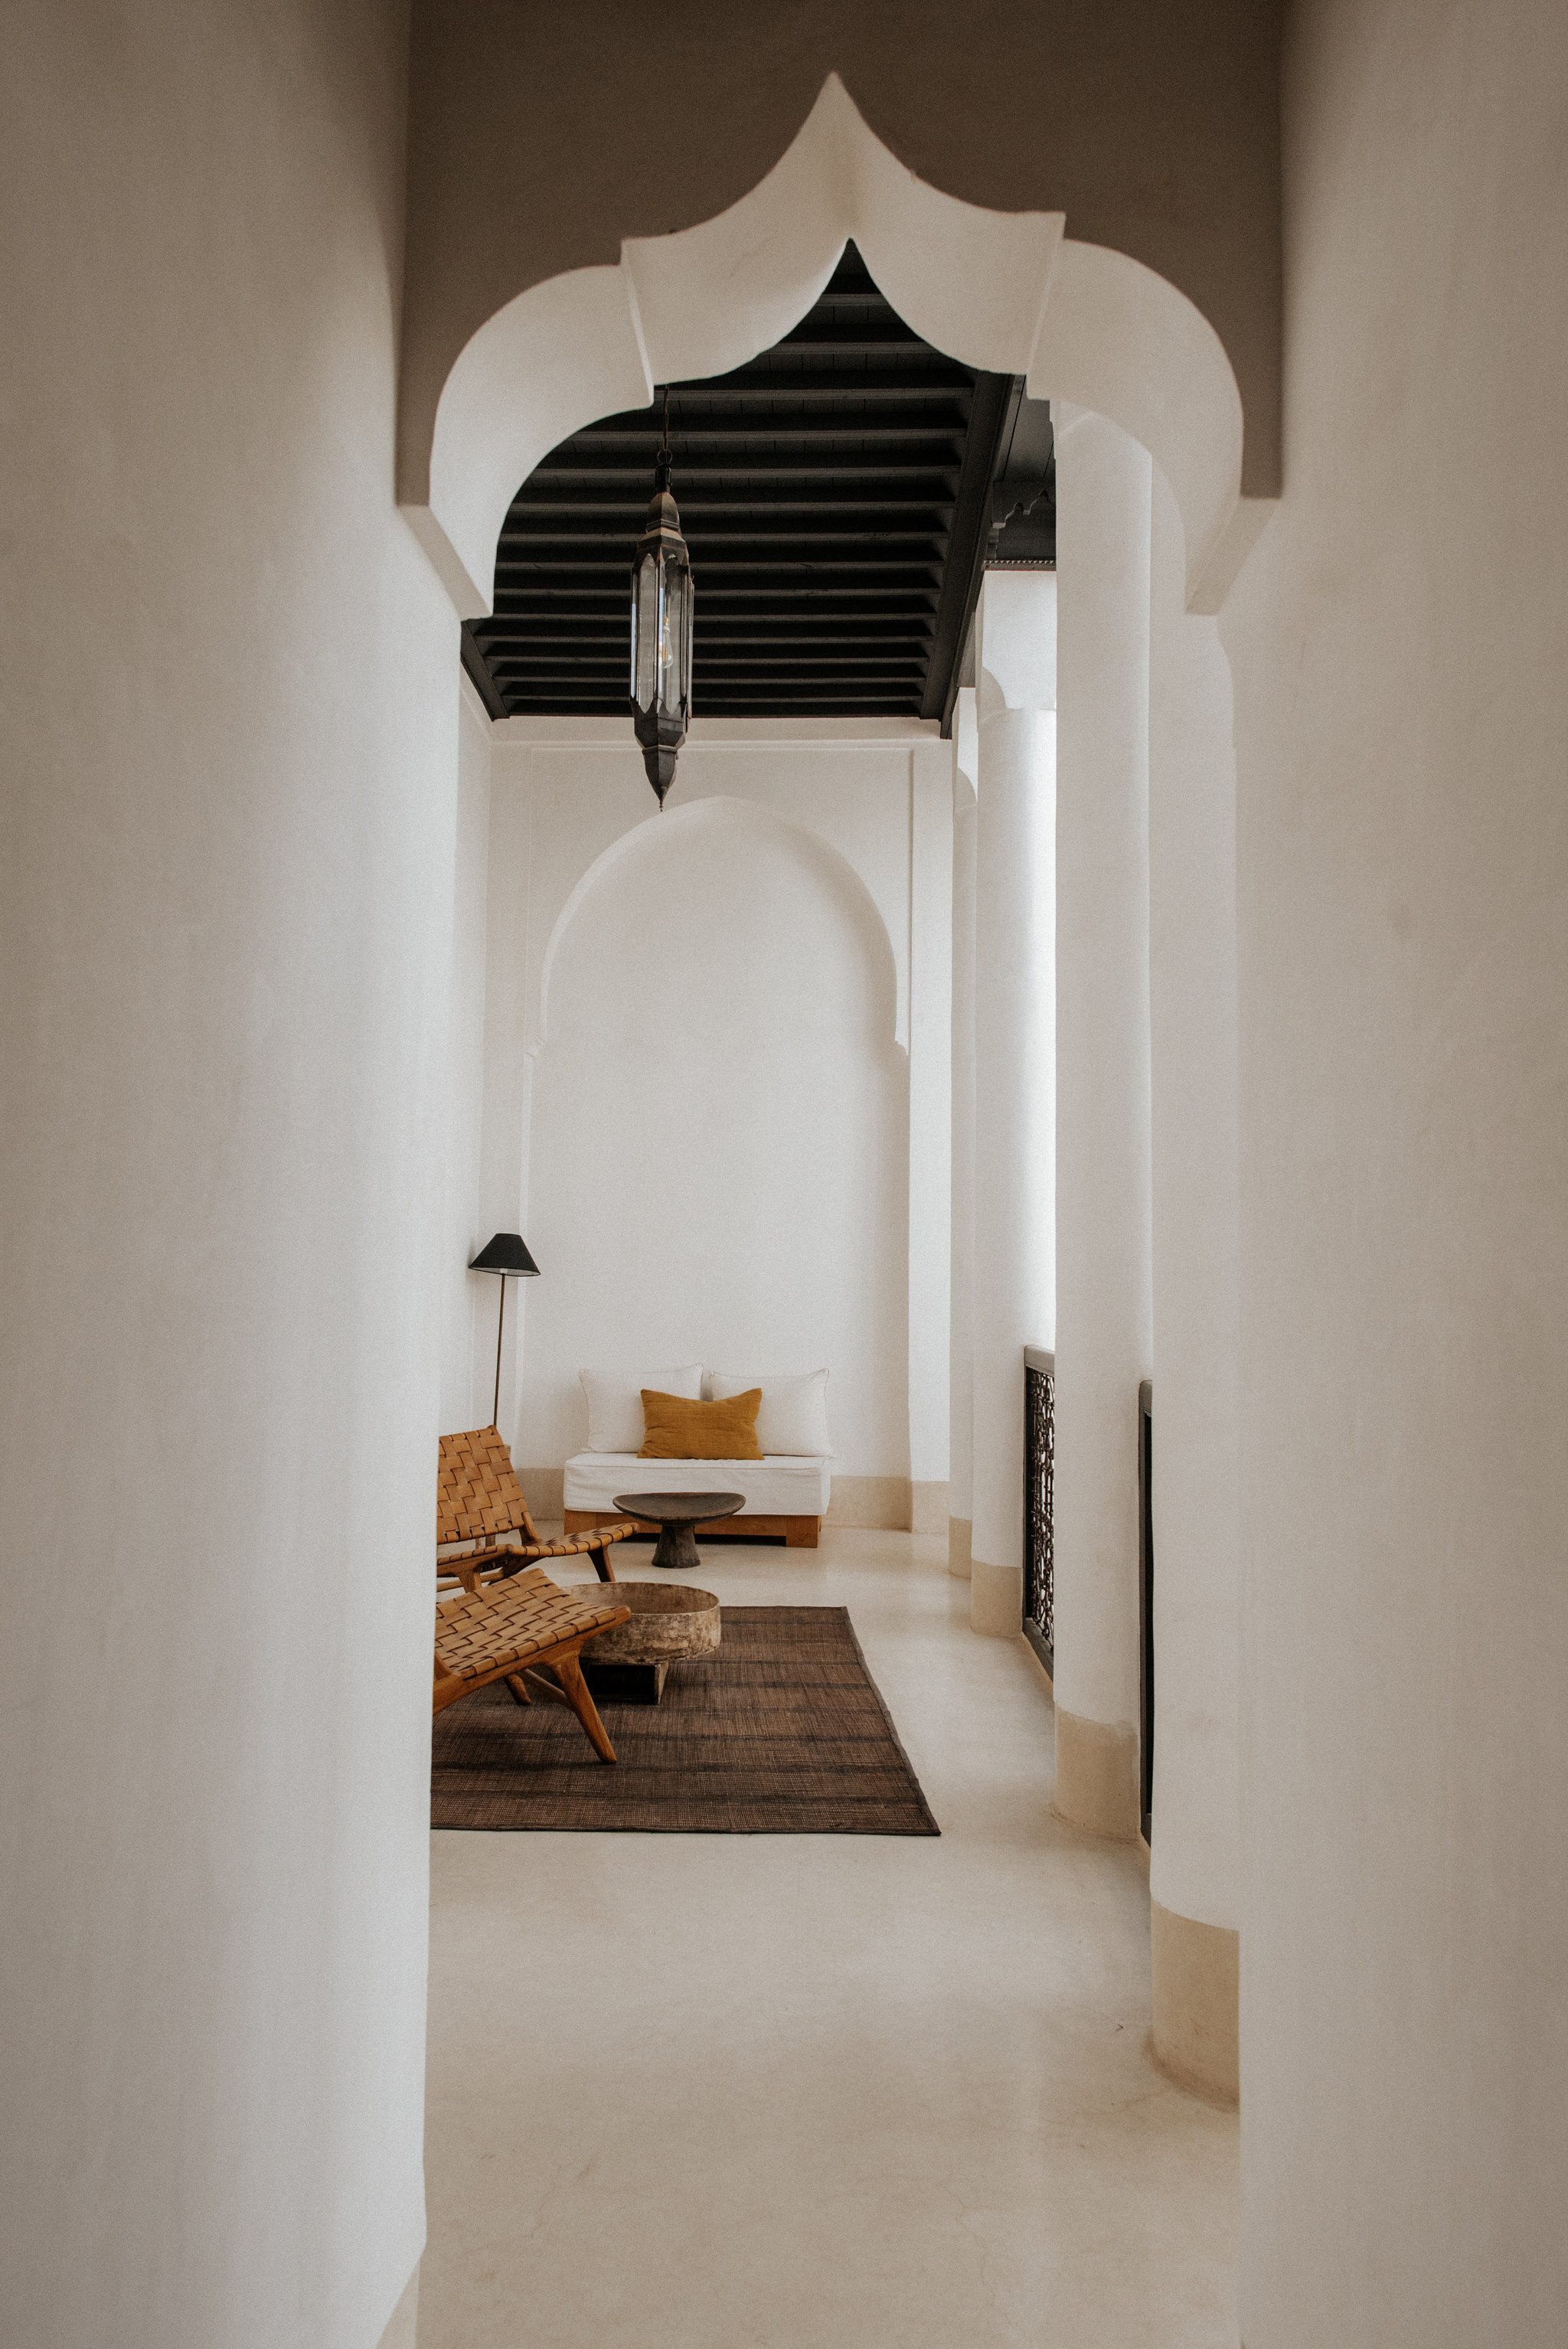 Riad 42 in Marrakech